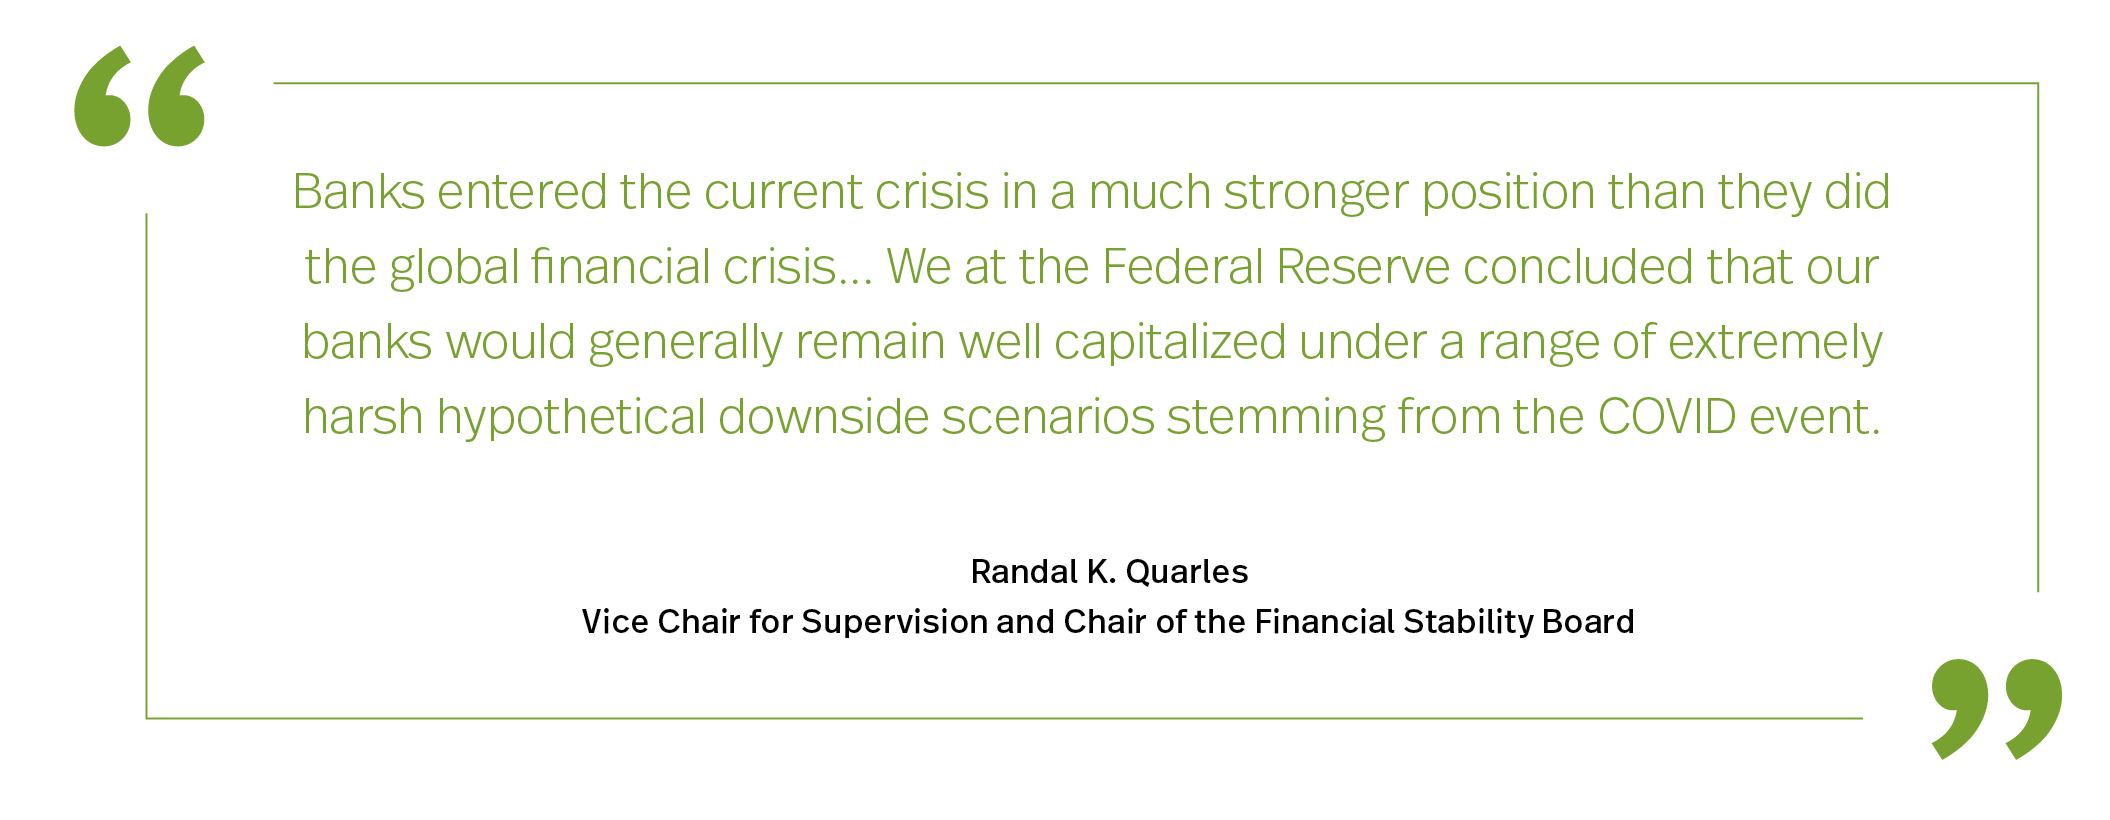 Prudential Regulation of the Capital Markets - Quarles Quote